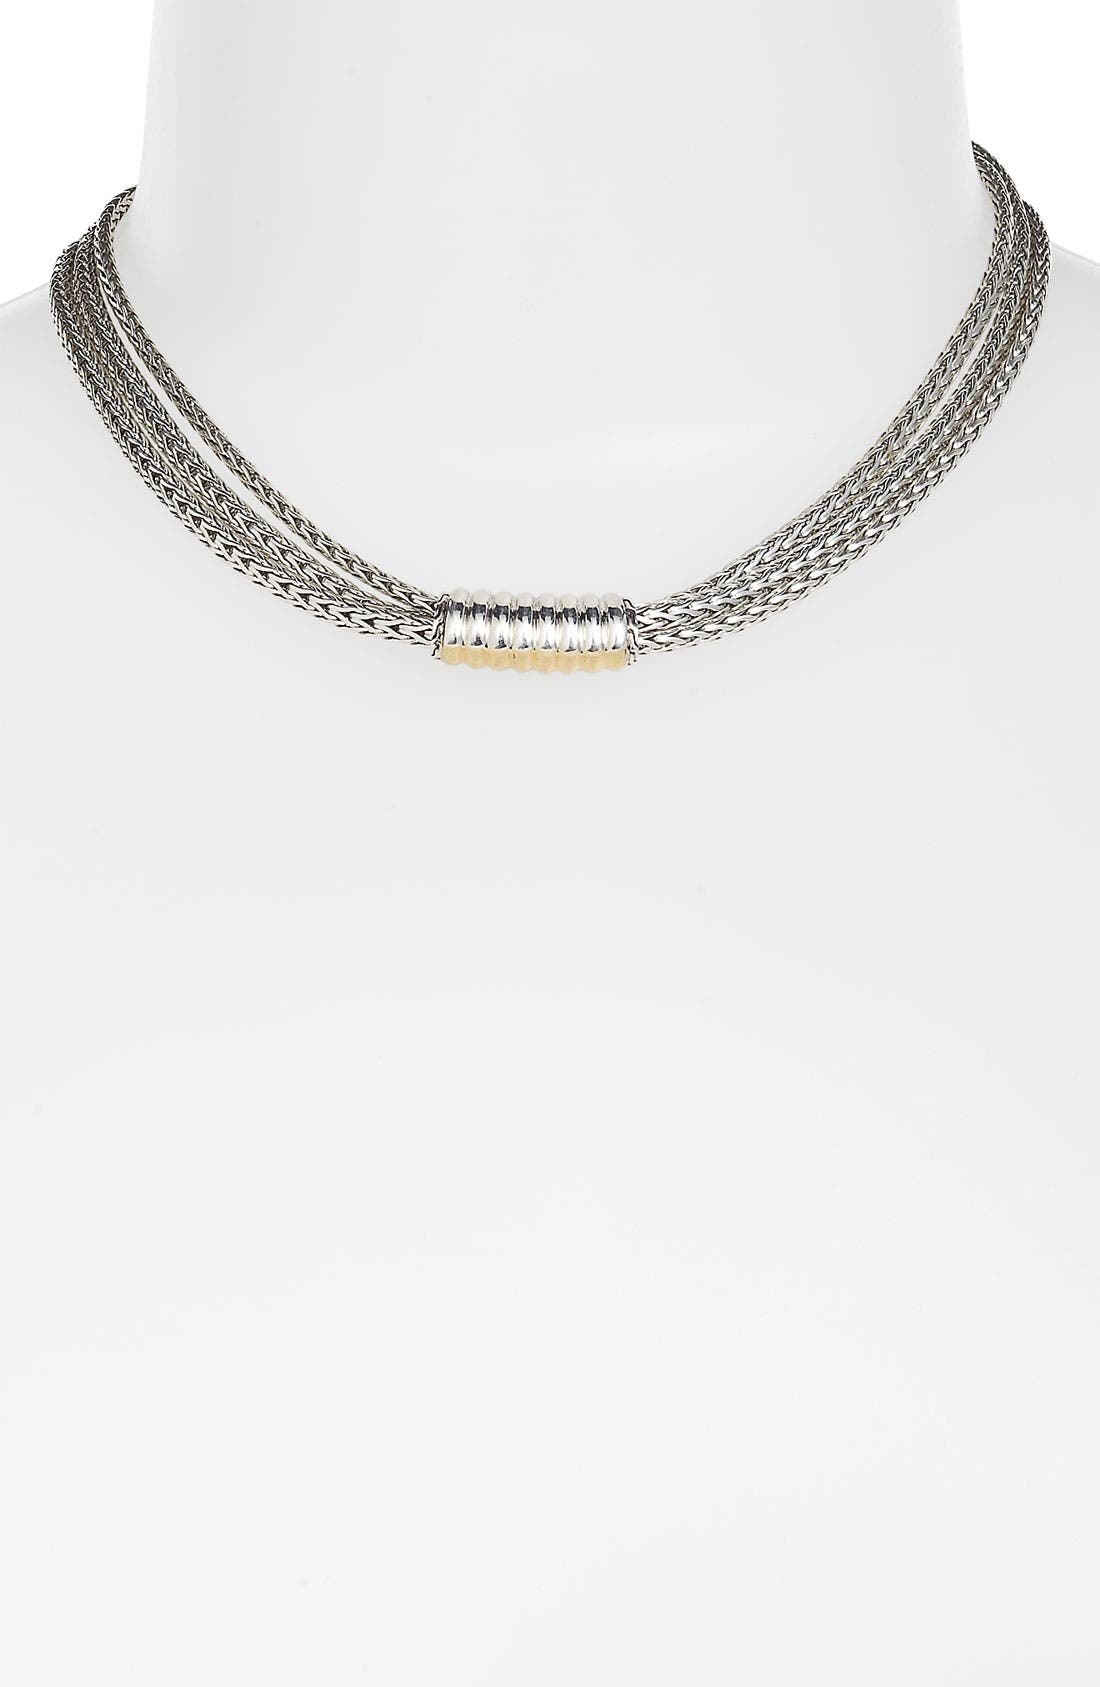 Alternate Image 1 Selected - John Hardy 'Bedeg' Triple Row Chain Necklace